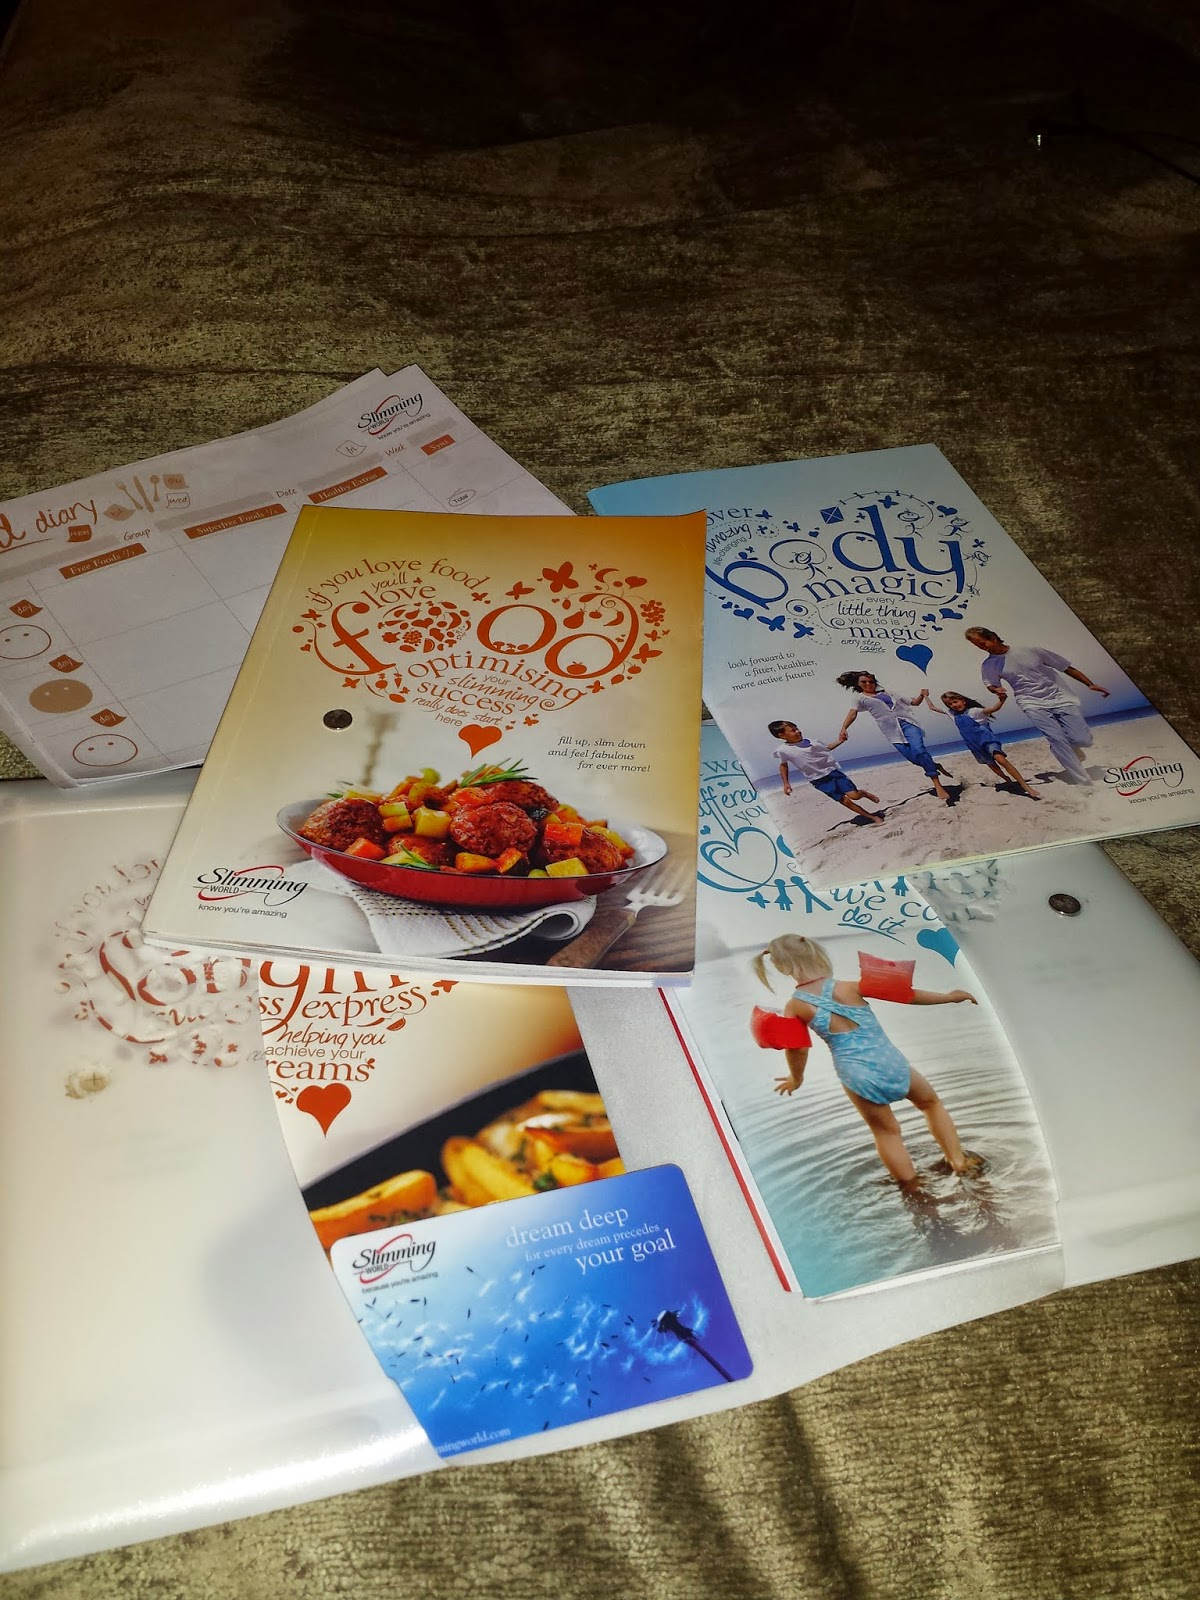 I joined slimming world neonrainbowblog Slimming world books free